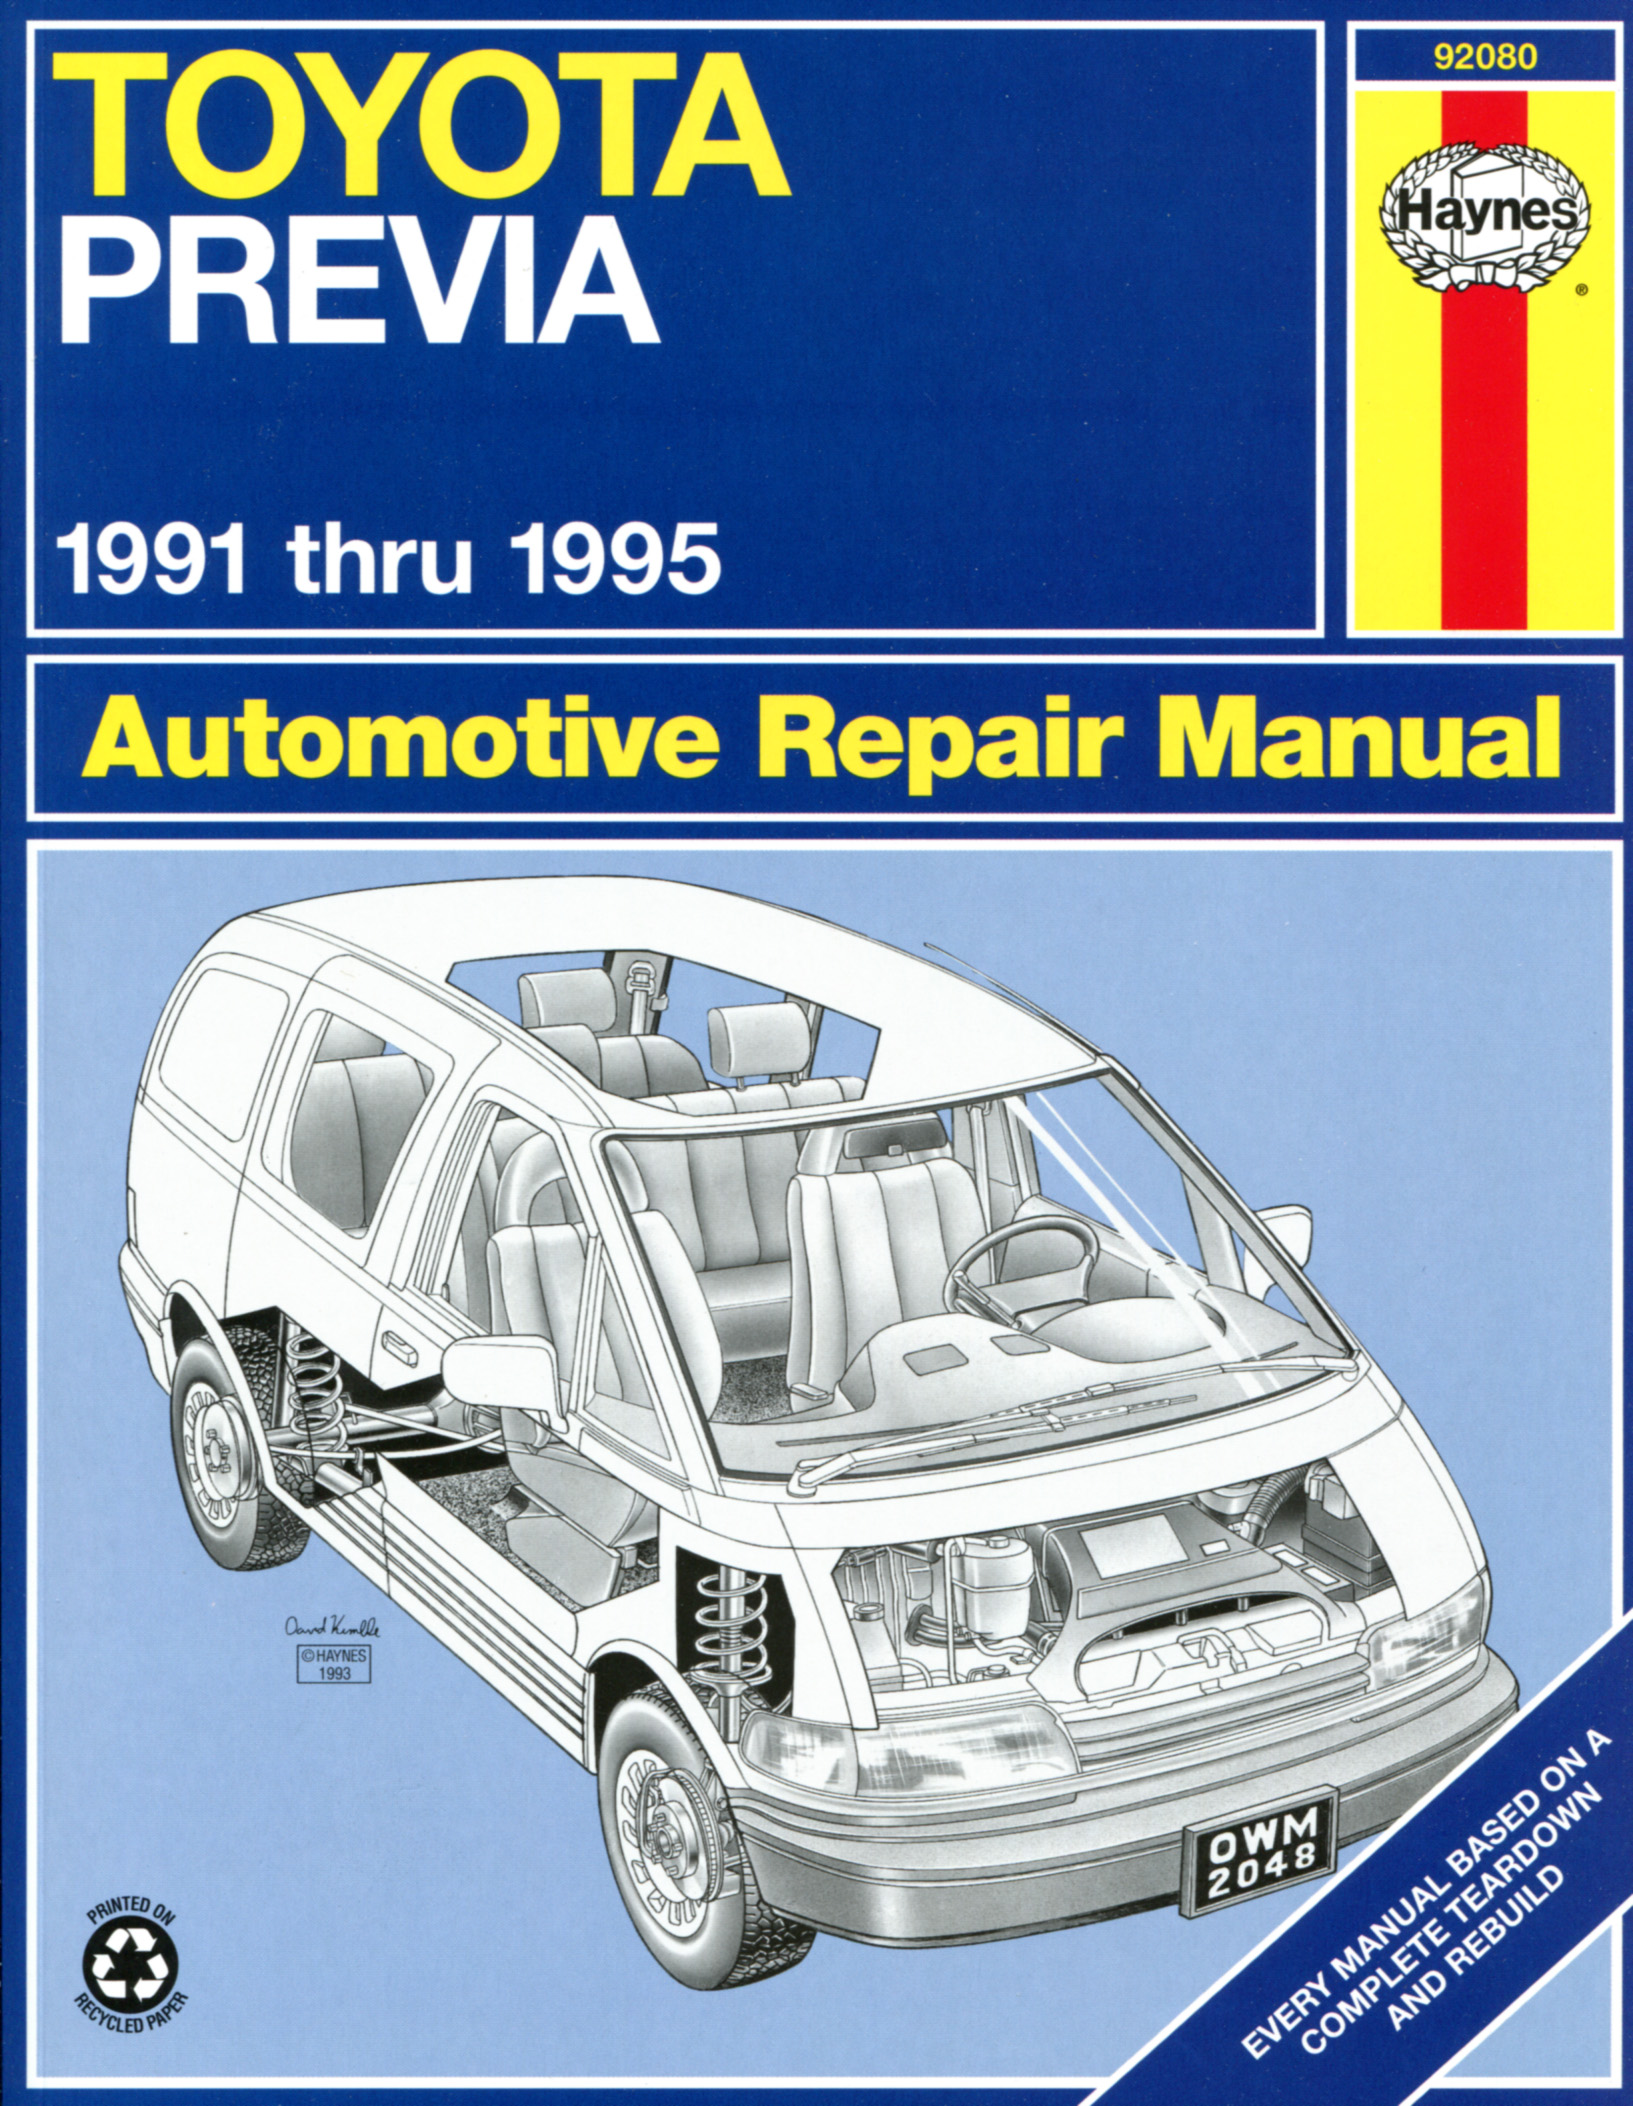 toyota previa 91 95 haynes repair manual haynes manuals rh haynes com toyota previa service manual download toyota previa 2002 owners manual